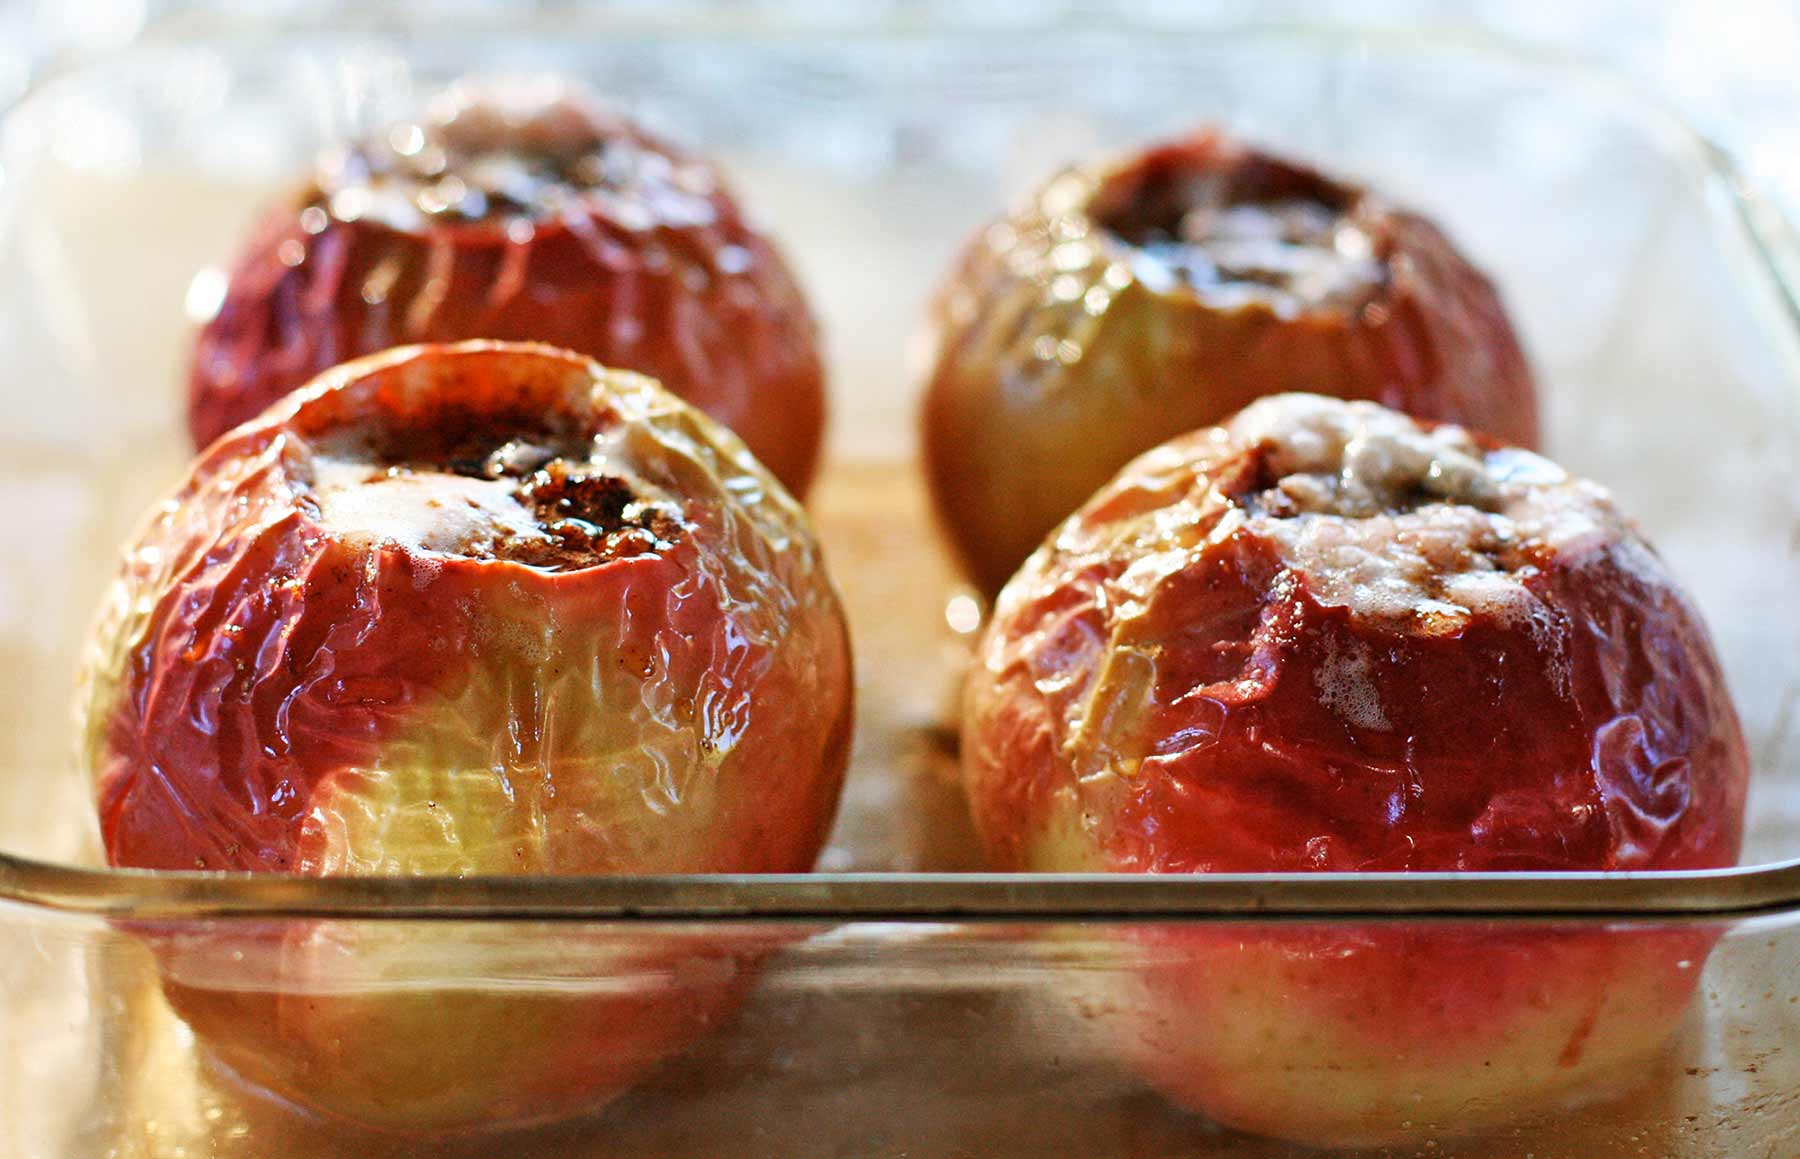 baked-apples-horiz-a-1800